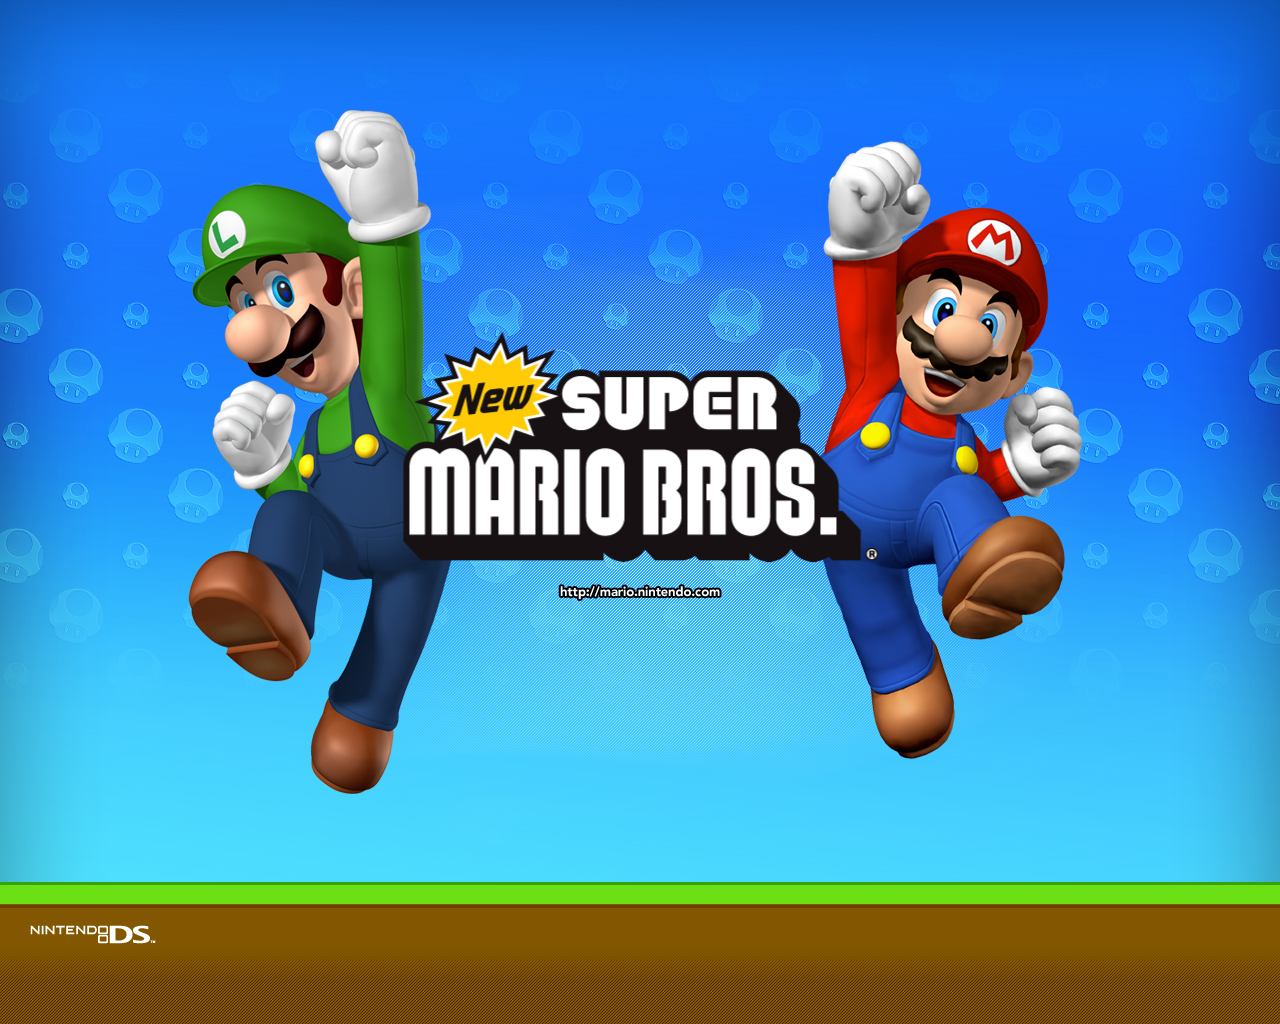 Game Download: Download Super Mario Bros Hd Apk